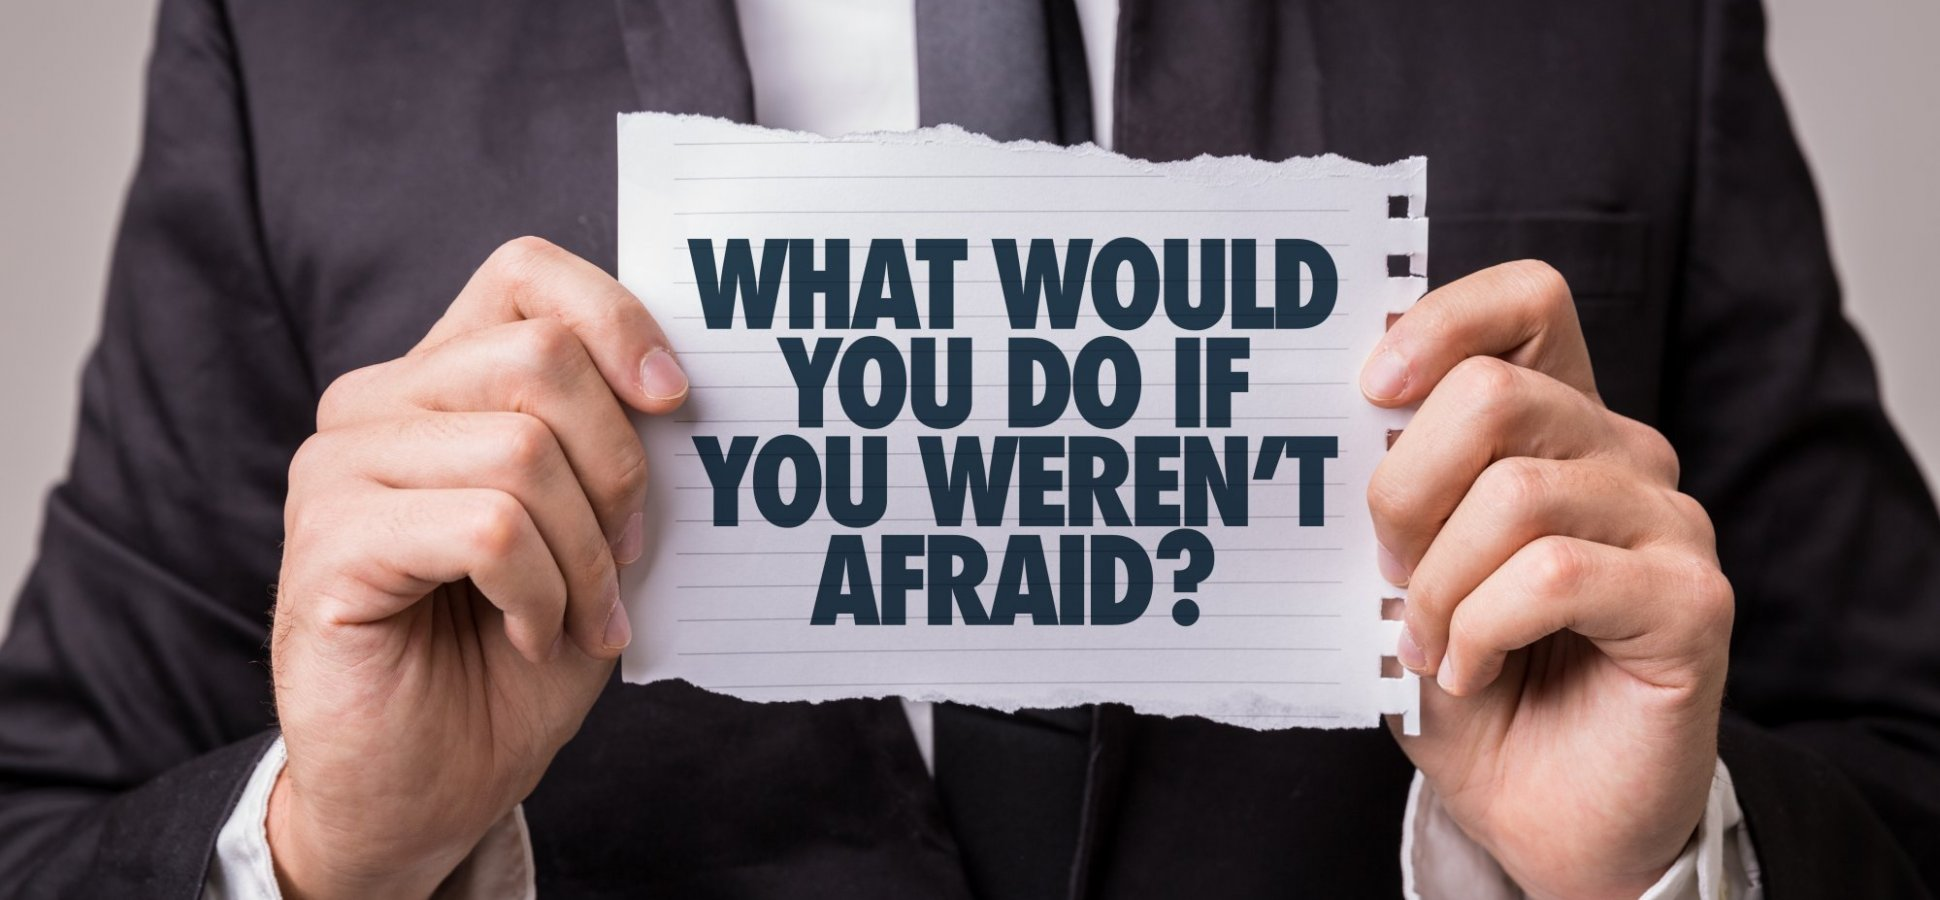 Is Fear Stopping You From Achieving Your Goals? Overcome it by Understanding These 3 Principles